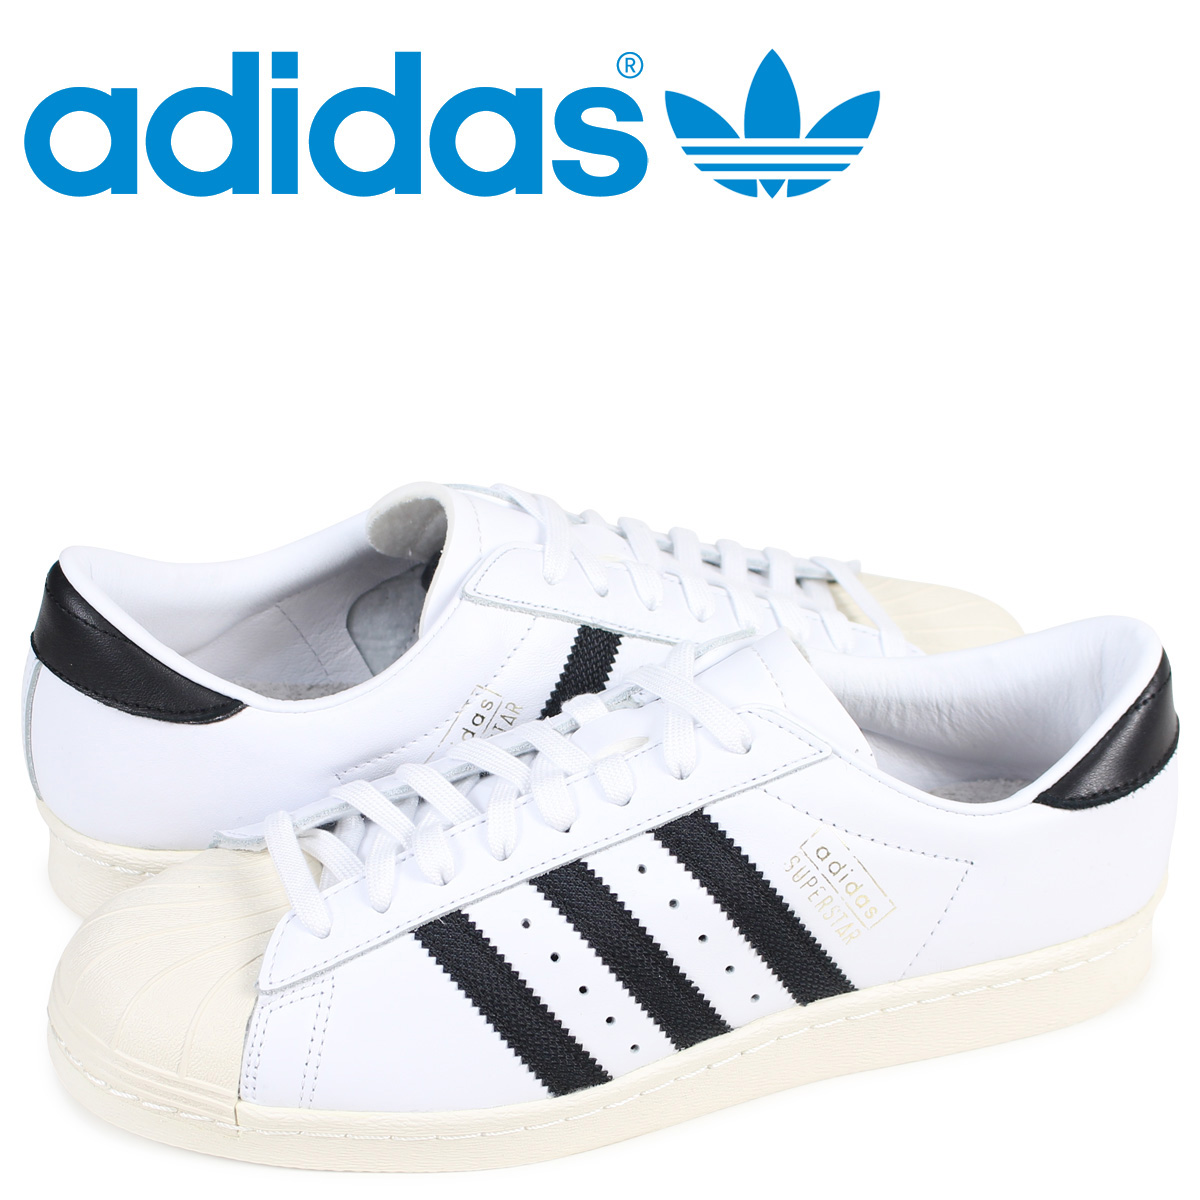 adidas adidas LA TRAINER W Womens sneakers [WHITE] women's women's women's White monotone running 80's S32235 ur